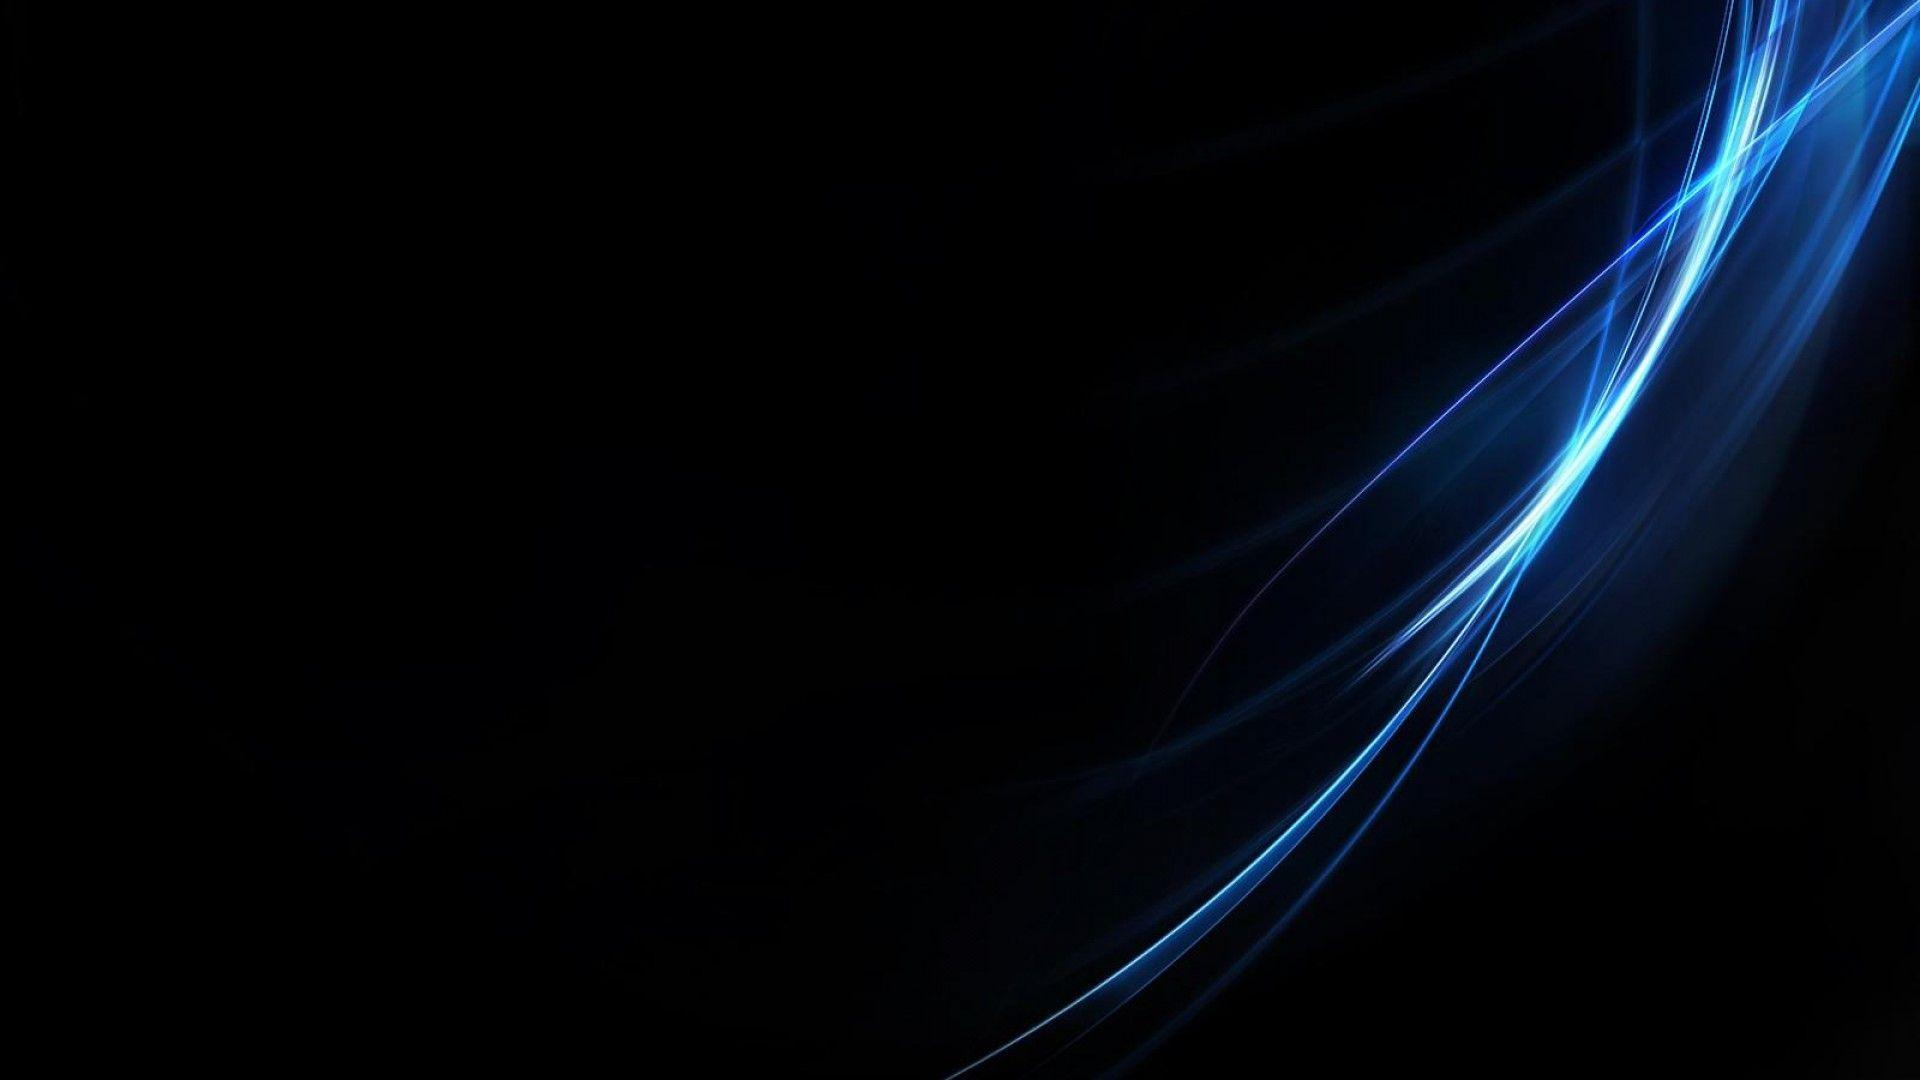 Dark Abstract Backgrounds 1920X1080 Hd Pictures 4 HD Wallpapers